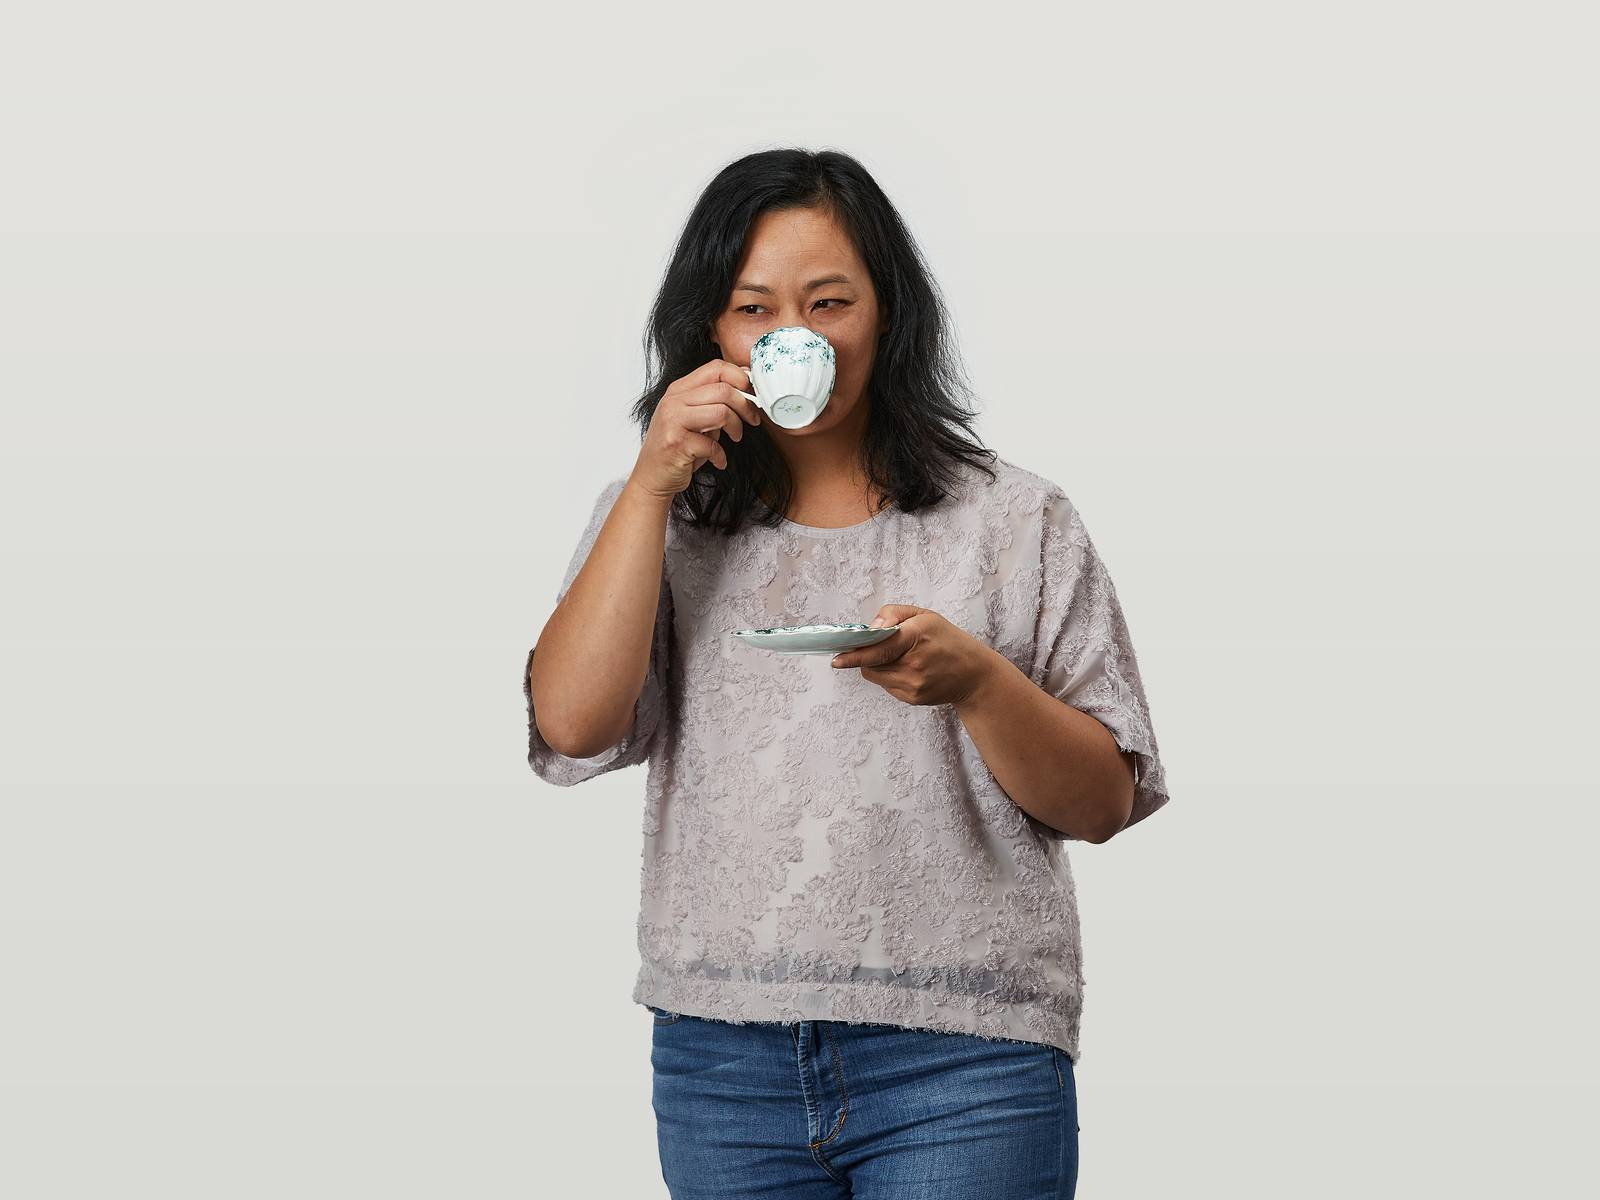 Stephanie sipping a cup of tea